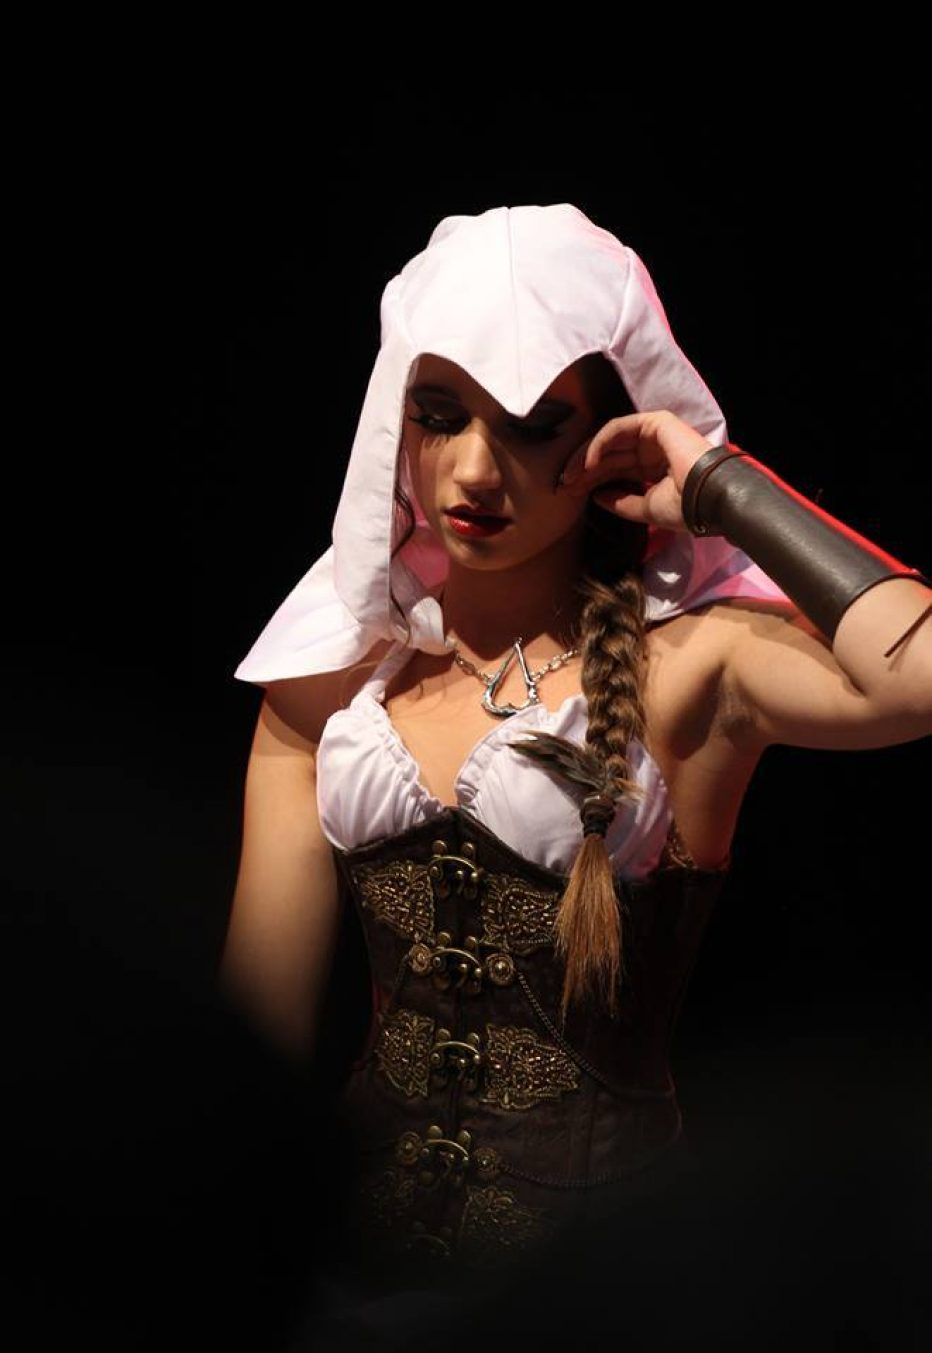 Assassins-Creed-Female-Cosplay-Gamers-Heroes-5.jpg